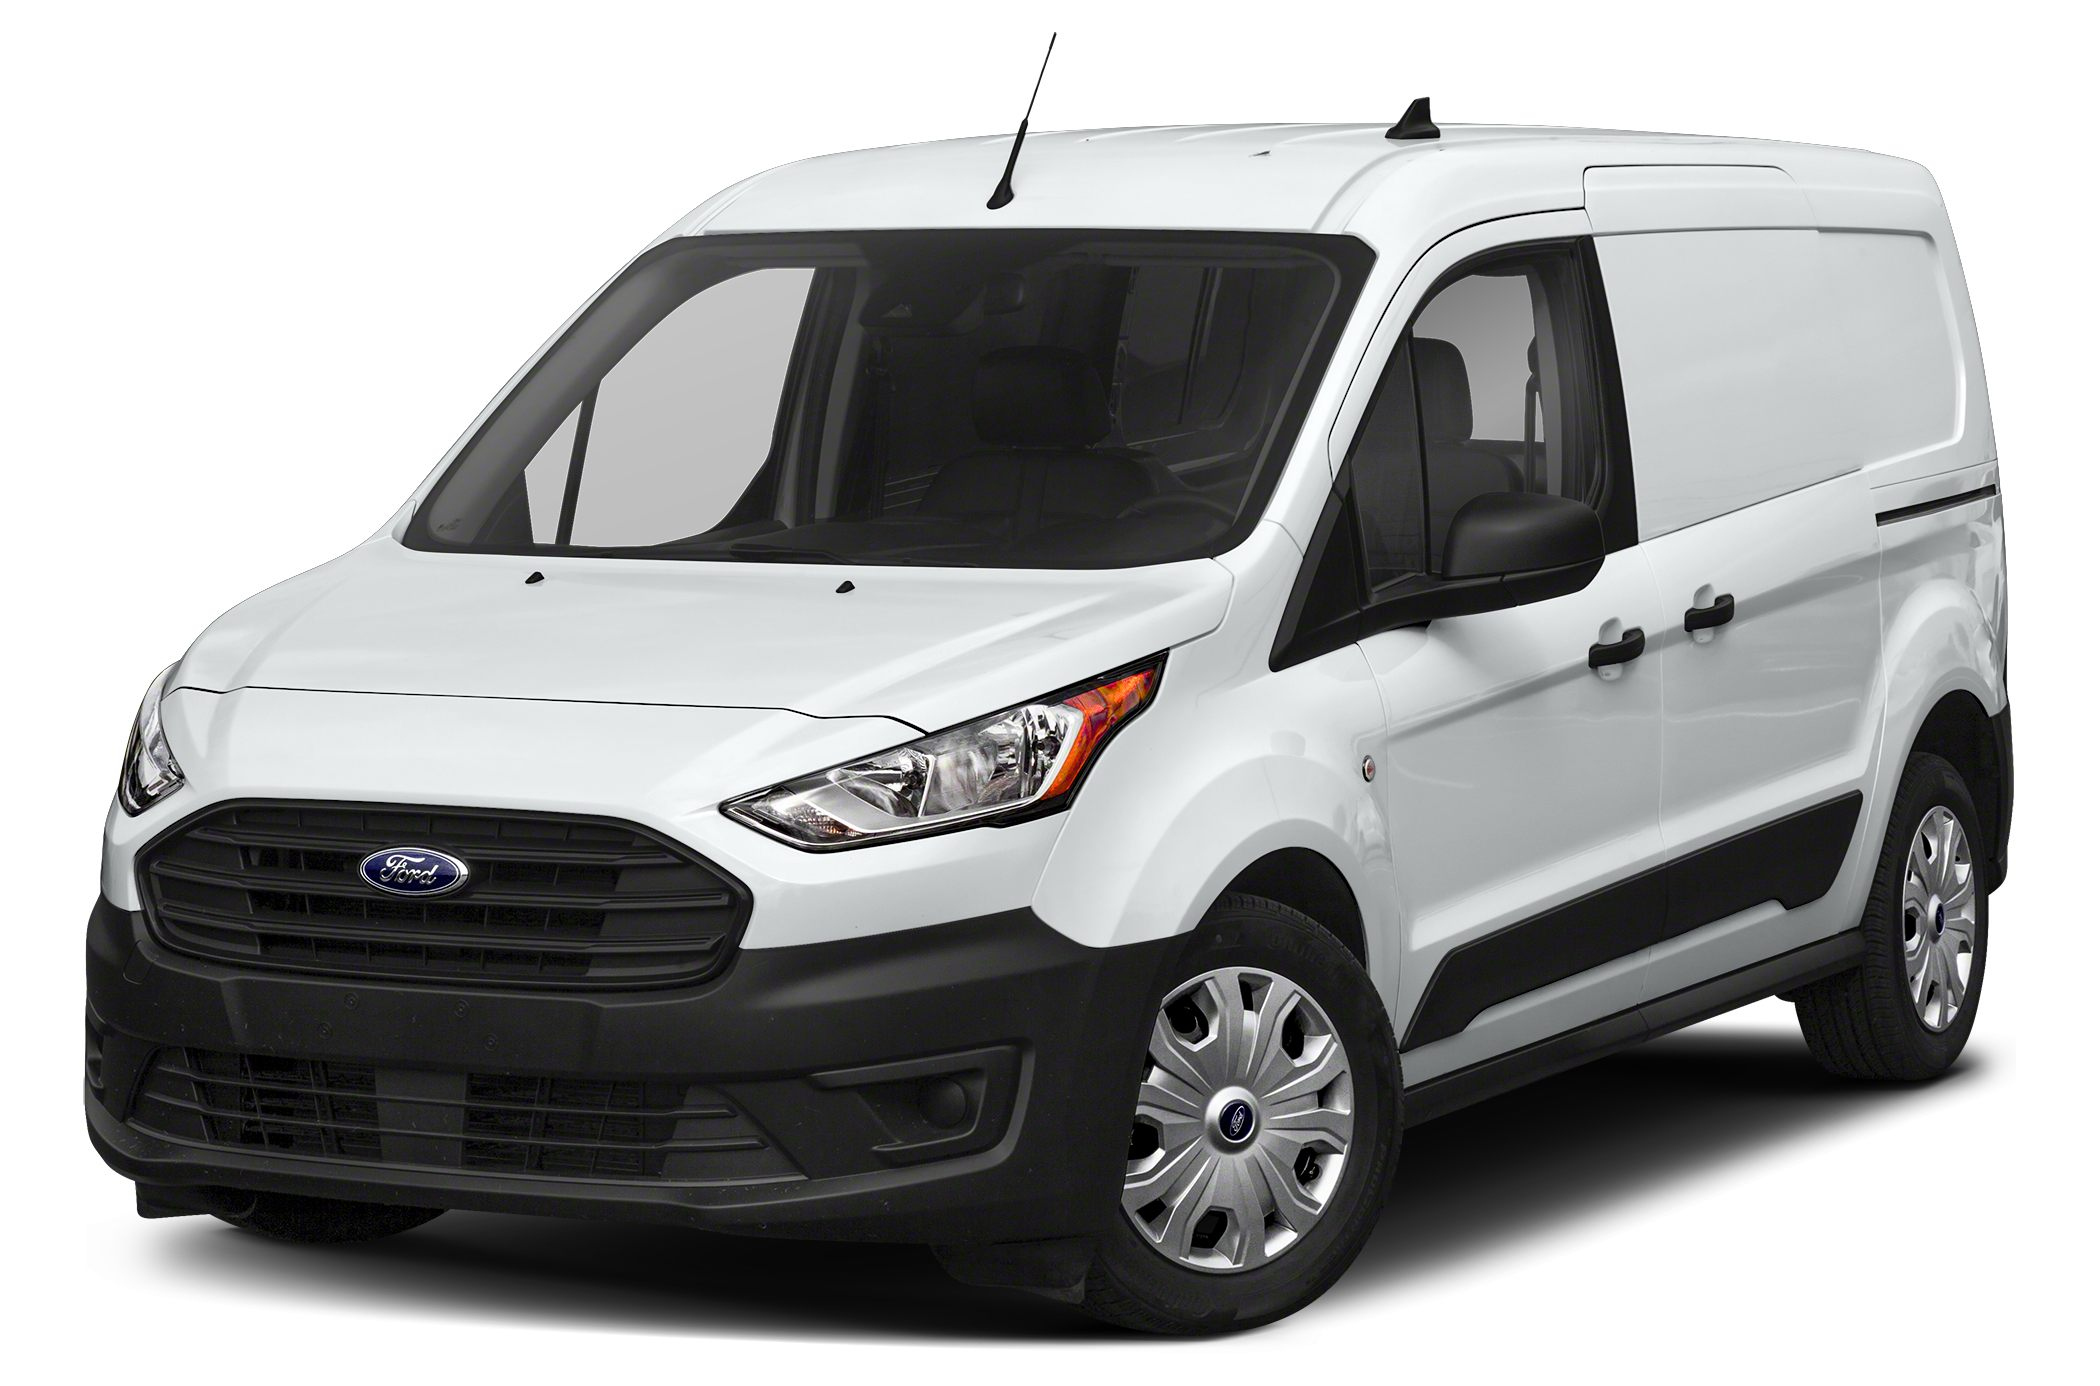 2021 Ford Transit Connect Xlt Cargo Van Specs And Prices